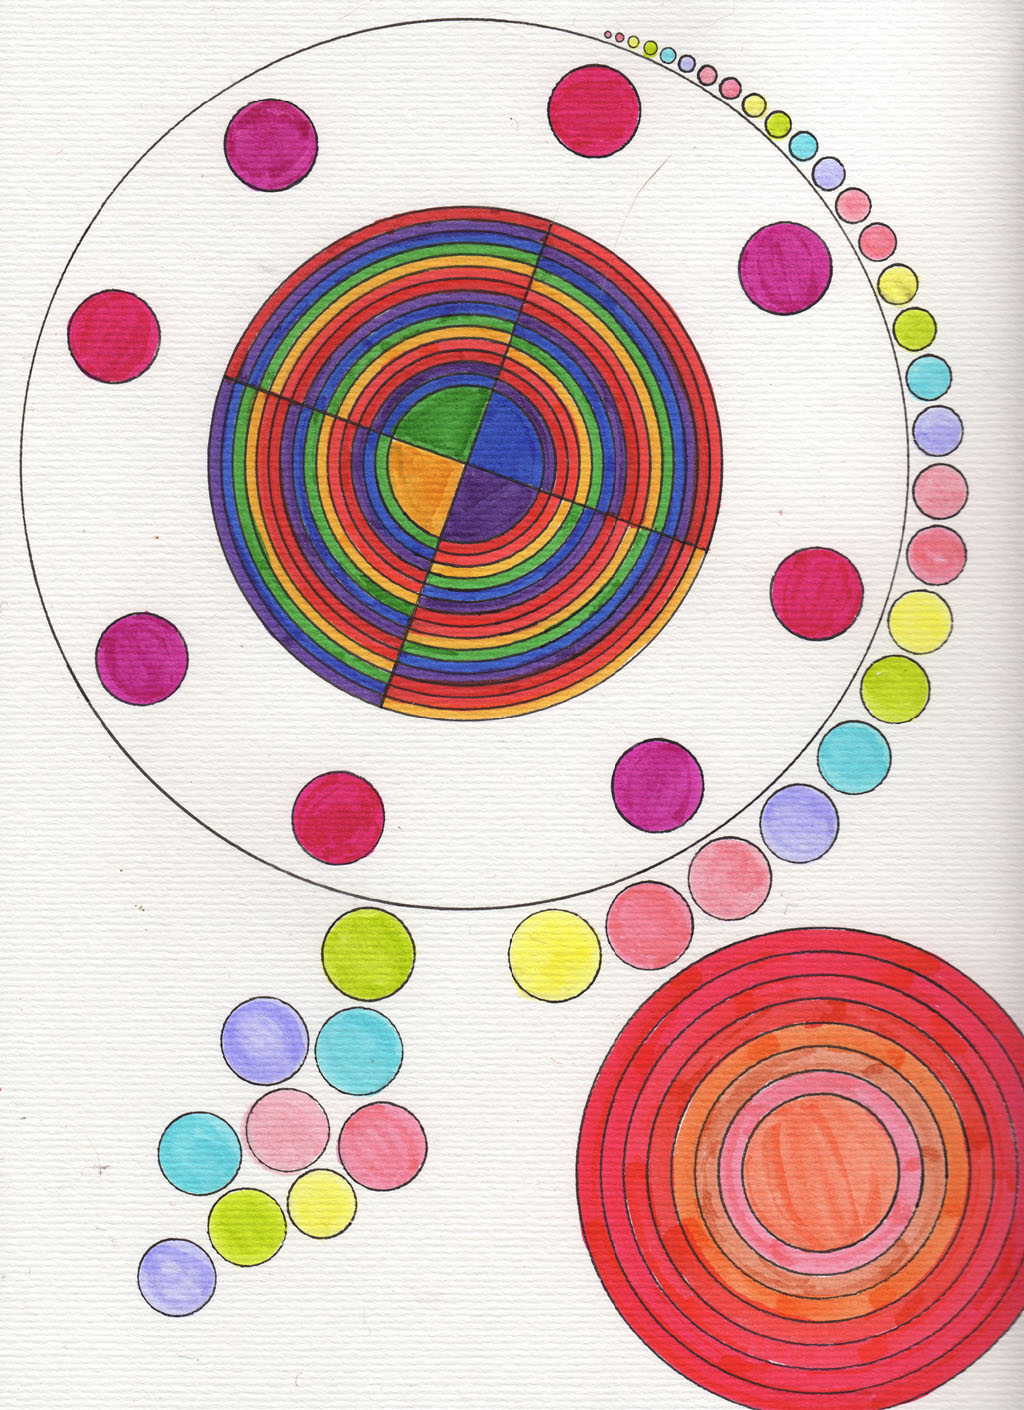 A Study in Circles